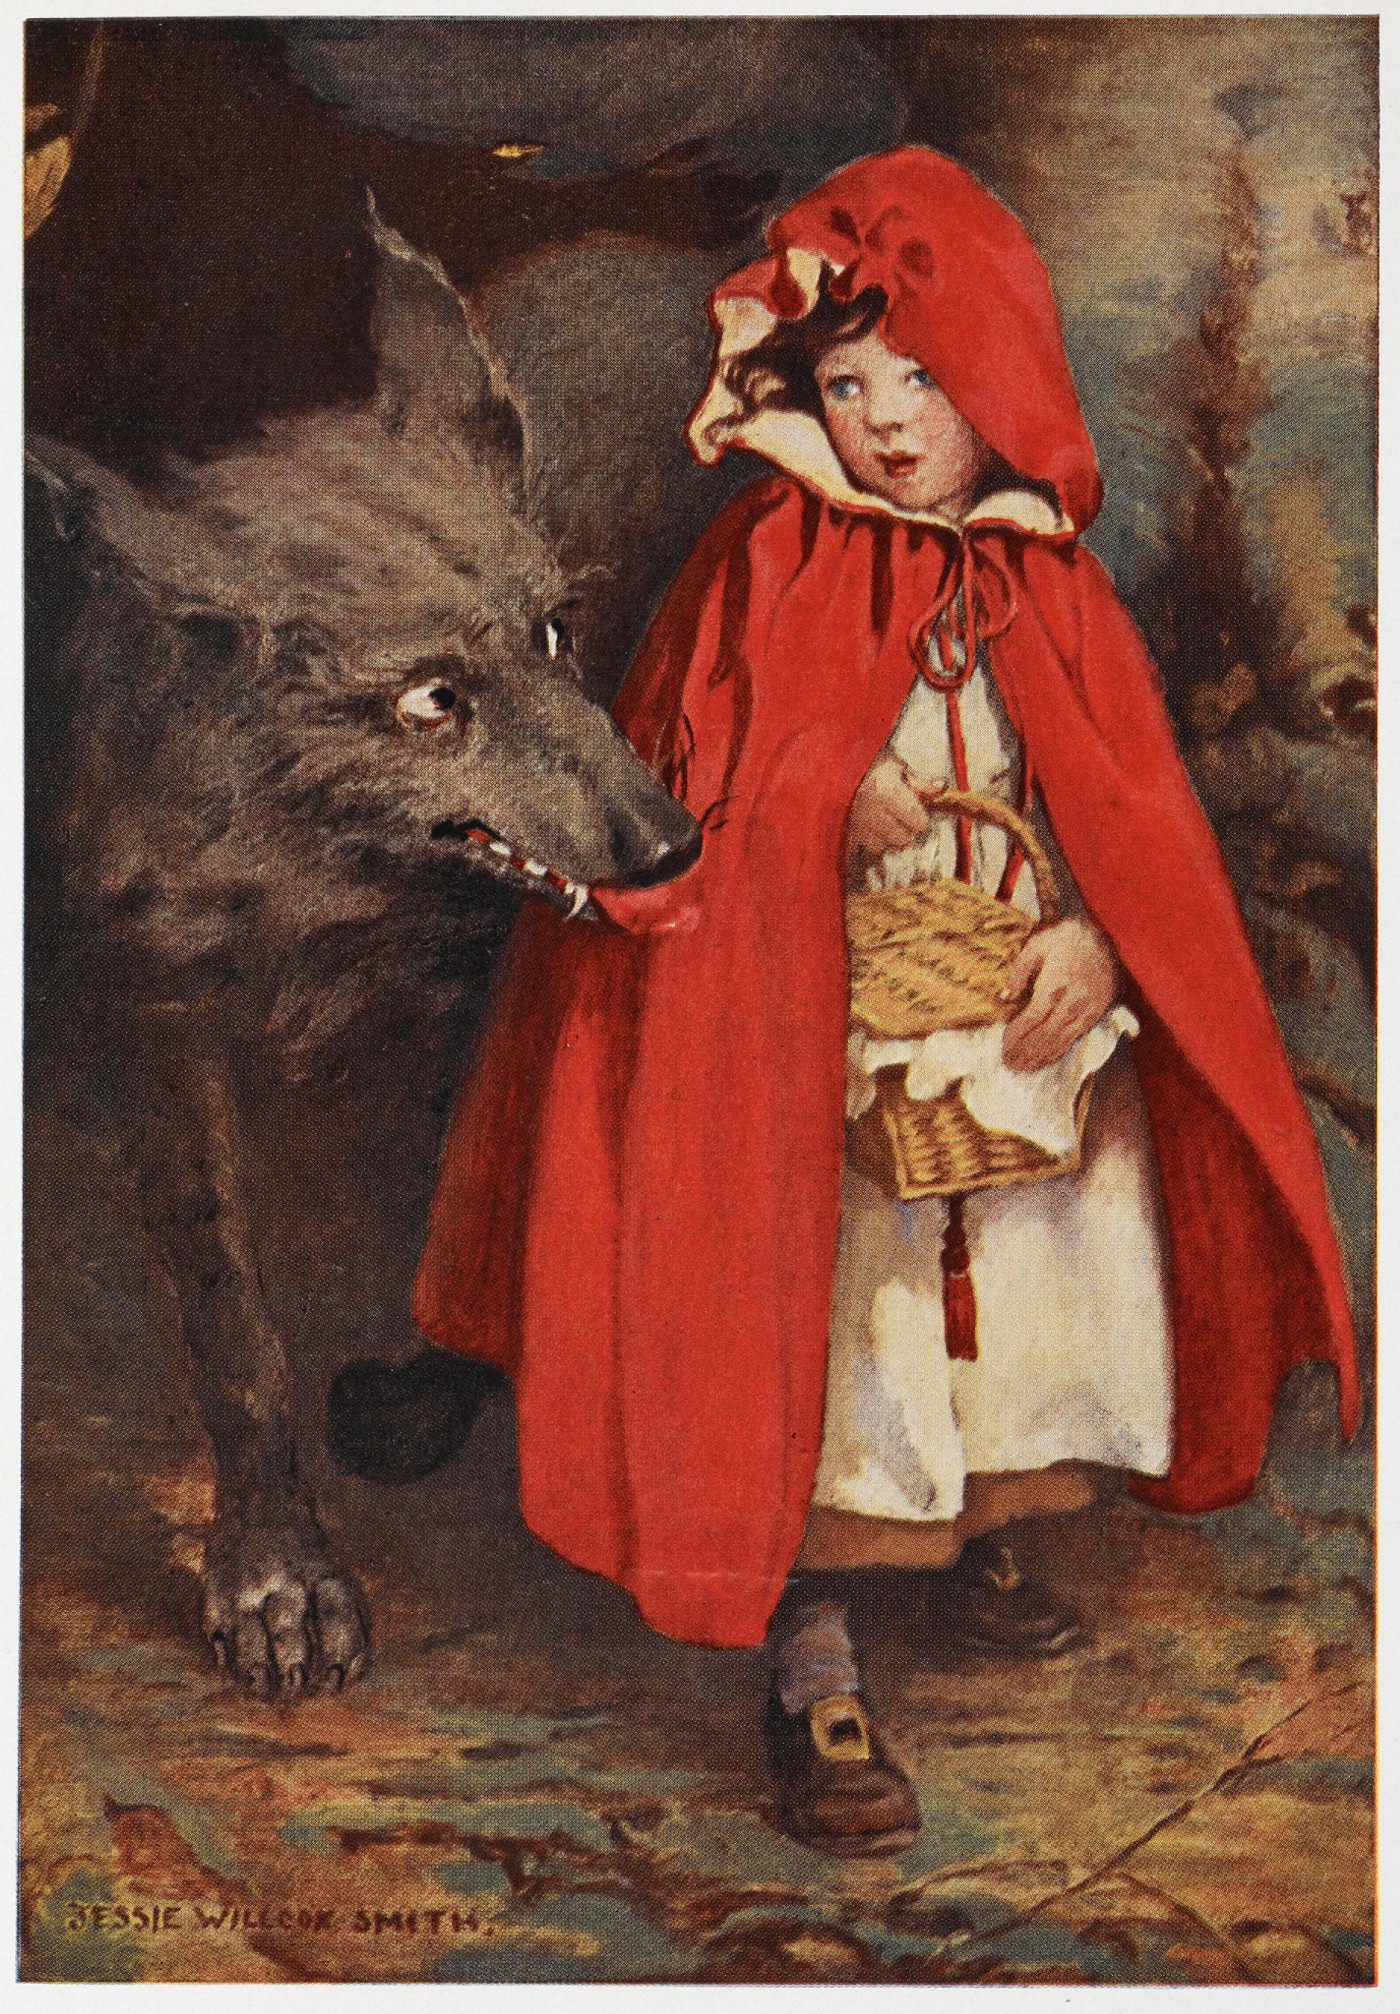 Illustration by J. W. Smith of little red riding hood being approached by the wolf.